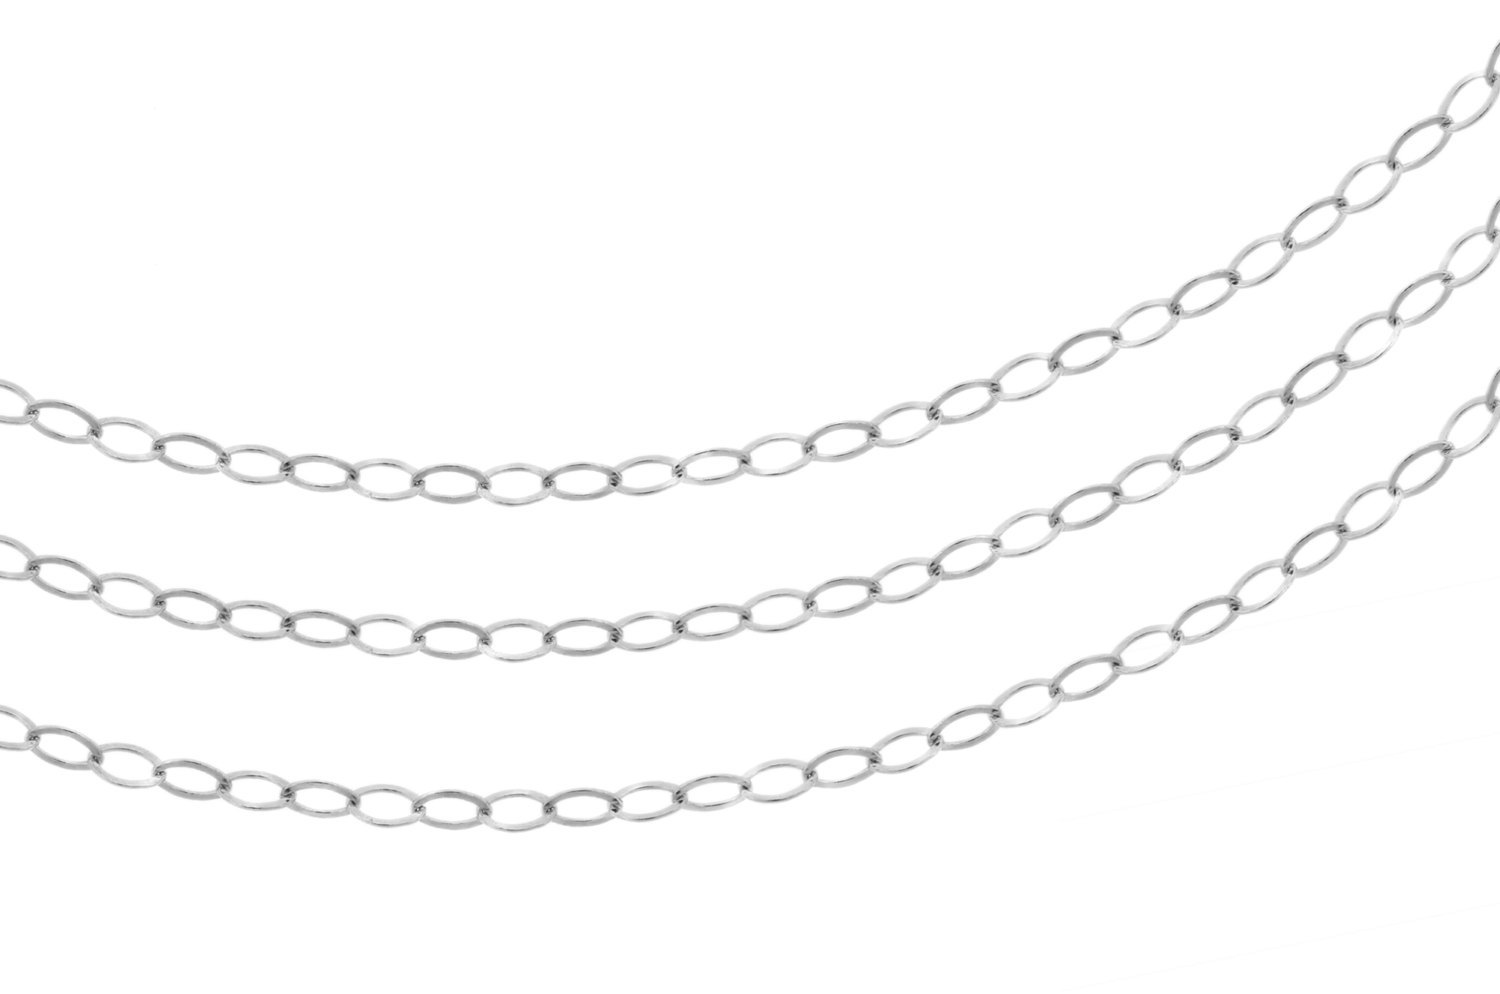 Primary image for Chains, Flat Cable Chain, Sterling Silver, 2.2x1.7mm, Pkg Of 20ft (2353-20)/1